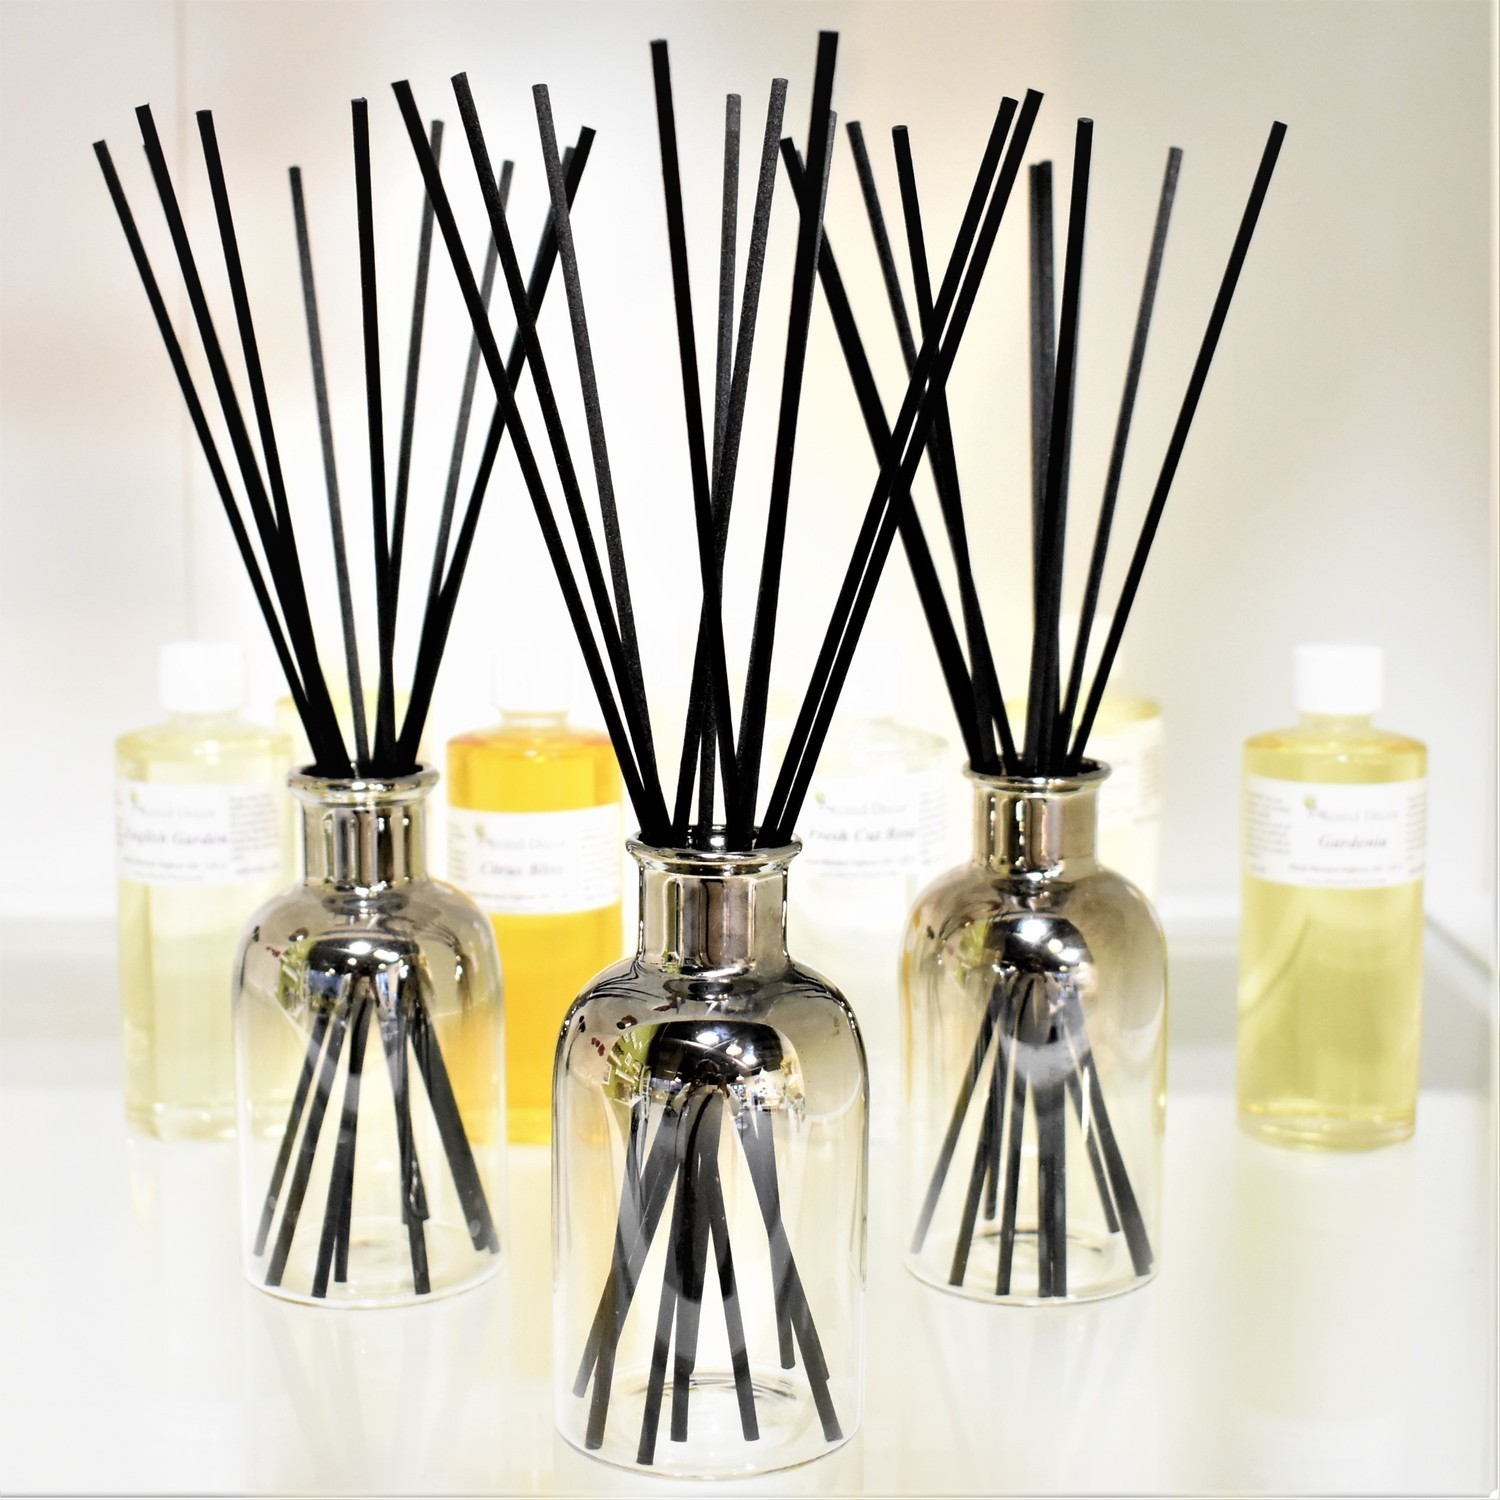 Luxury Reed Diffuser Kit